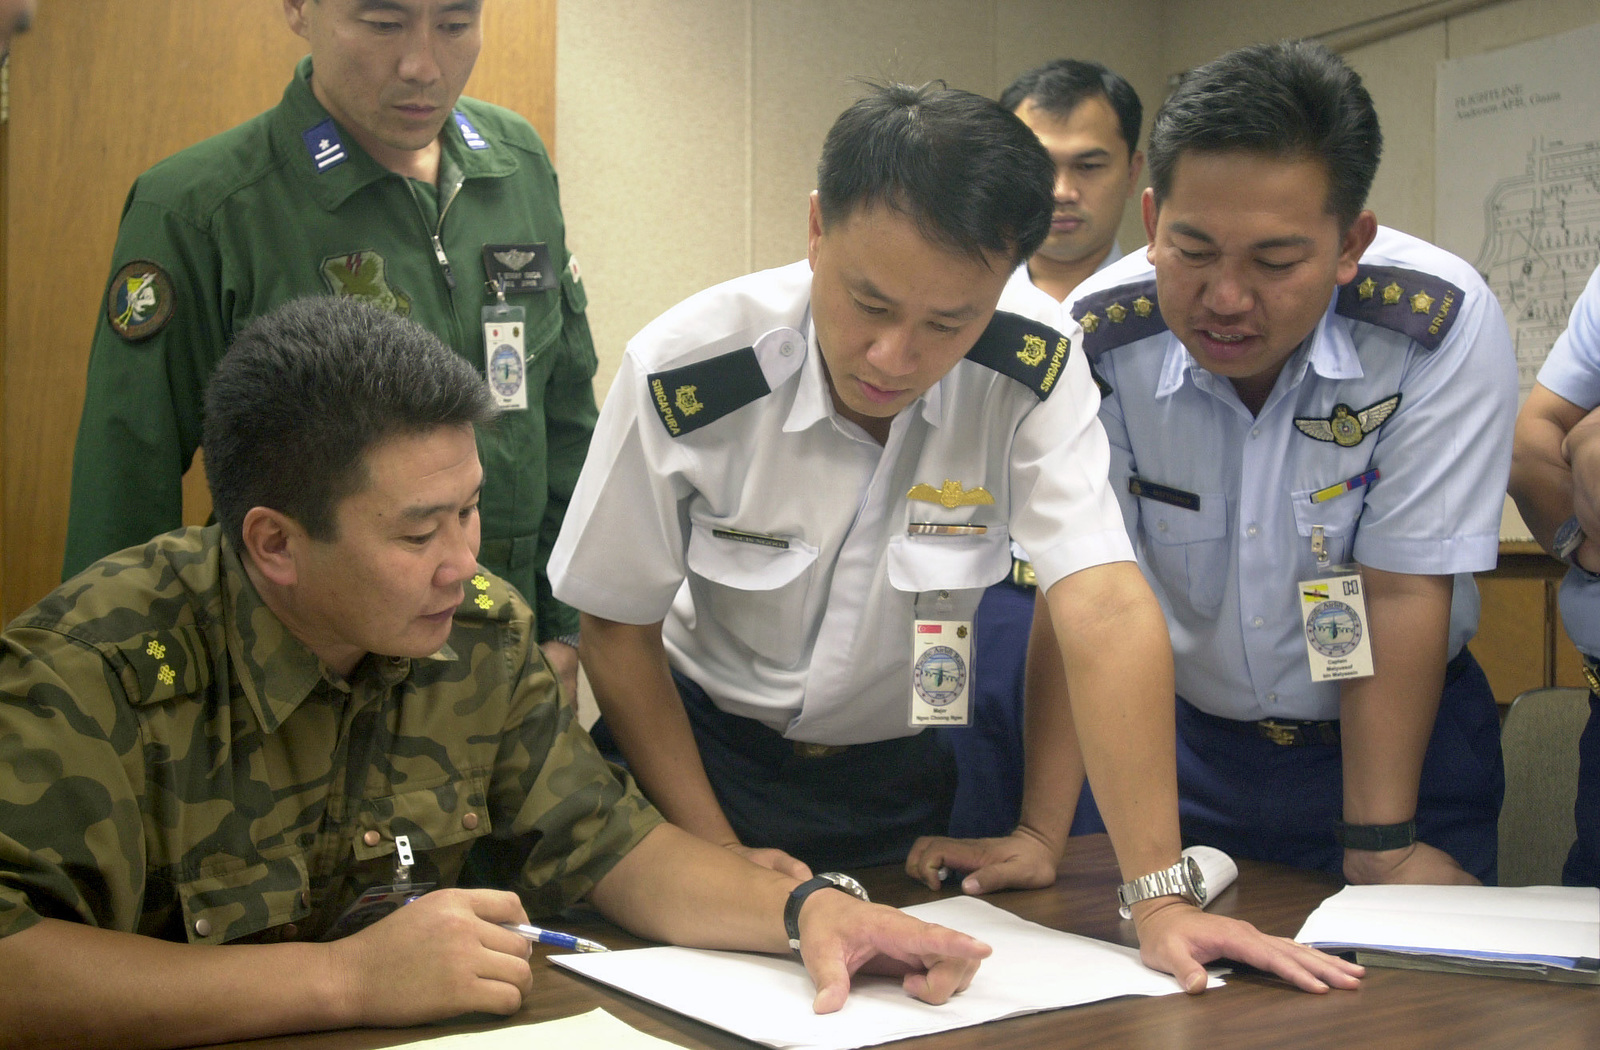 Lieutenant Colonel J. Batsukh, (left), Foreign Relations Officer, Mongolia, explains his plan for deployment of the C-130 Hercules to Major Francis Ngooi Choong Ngee, (center), Air Operations Department, Singapore and Captain Matyussof bin Matyassin, Training no. 4 Squadron, Brunei, at the PACIFIC AIRLIFT RALLY 2001. PACIFIC AIRLIFT RALLY (PAR) is a PACAF-sponsored military airlift symposium for countries in the pacific region. PAR is held every two years and is hosted by a pacific nation. This year Andersen AFB, Guam is the host nation. The symposium includes informational seminars with area of expertise briefings, a command post exercise (CPX) which addresses military airlift support ...